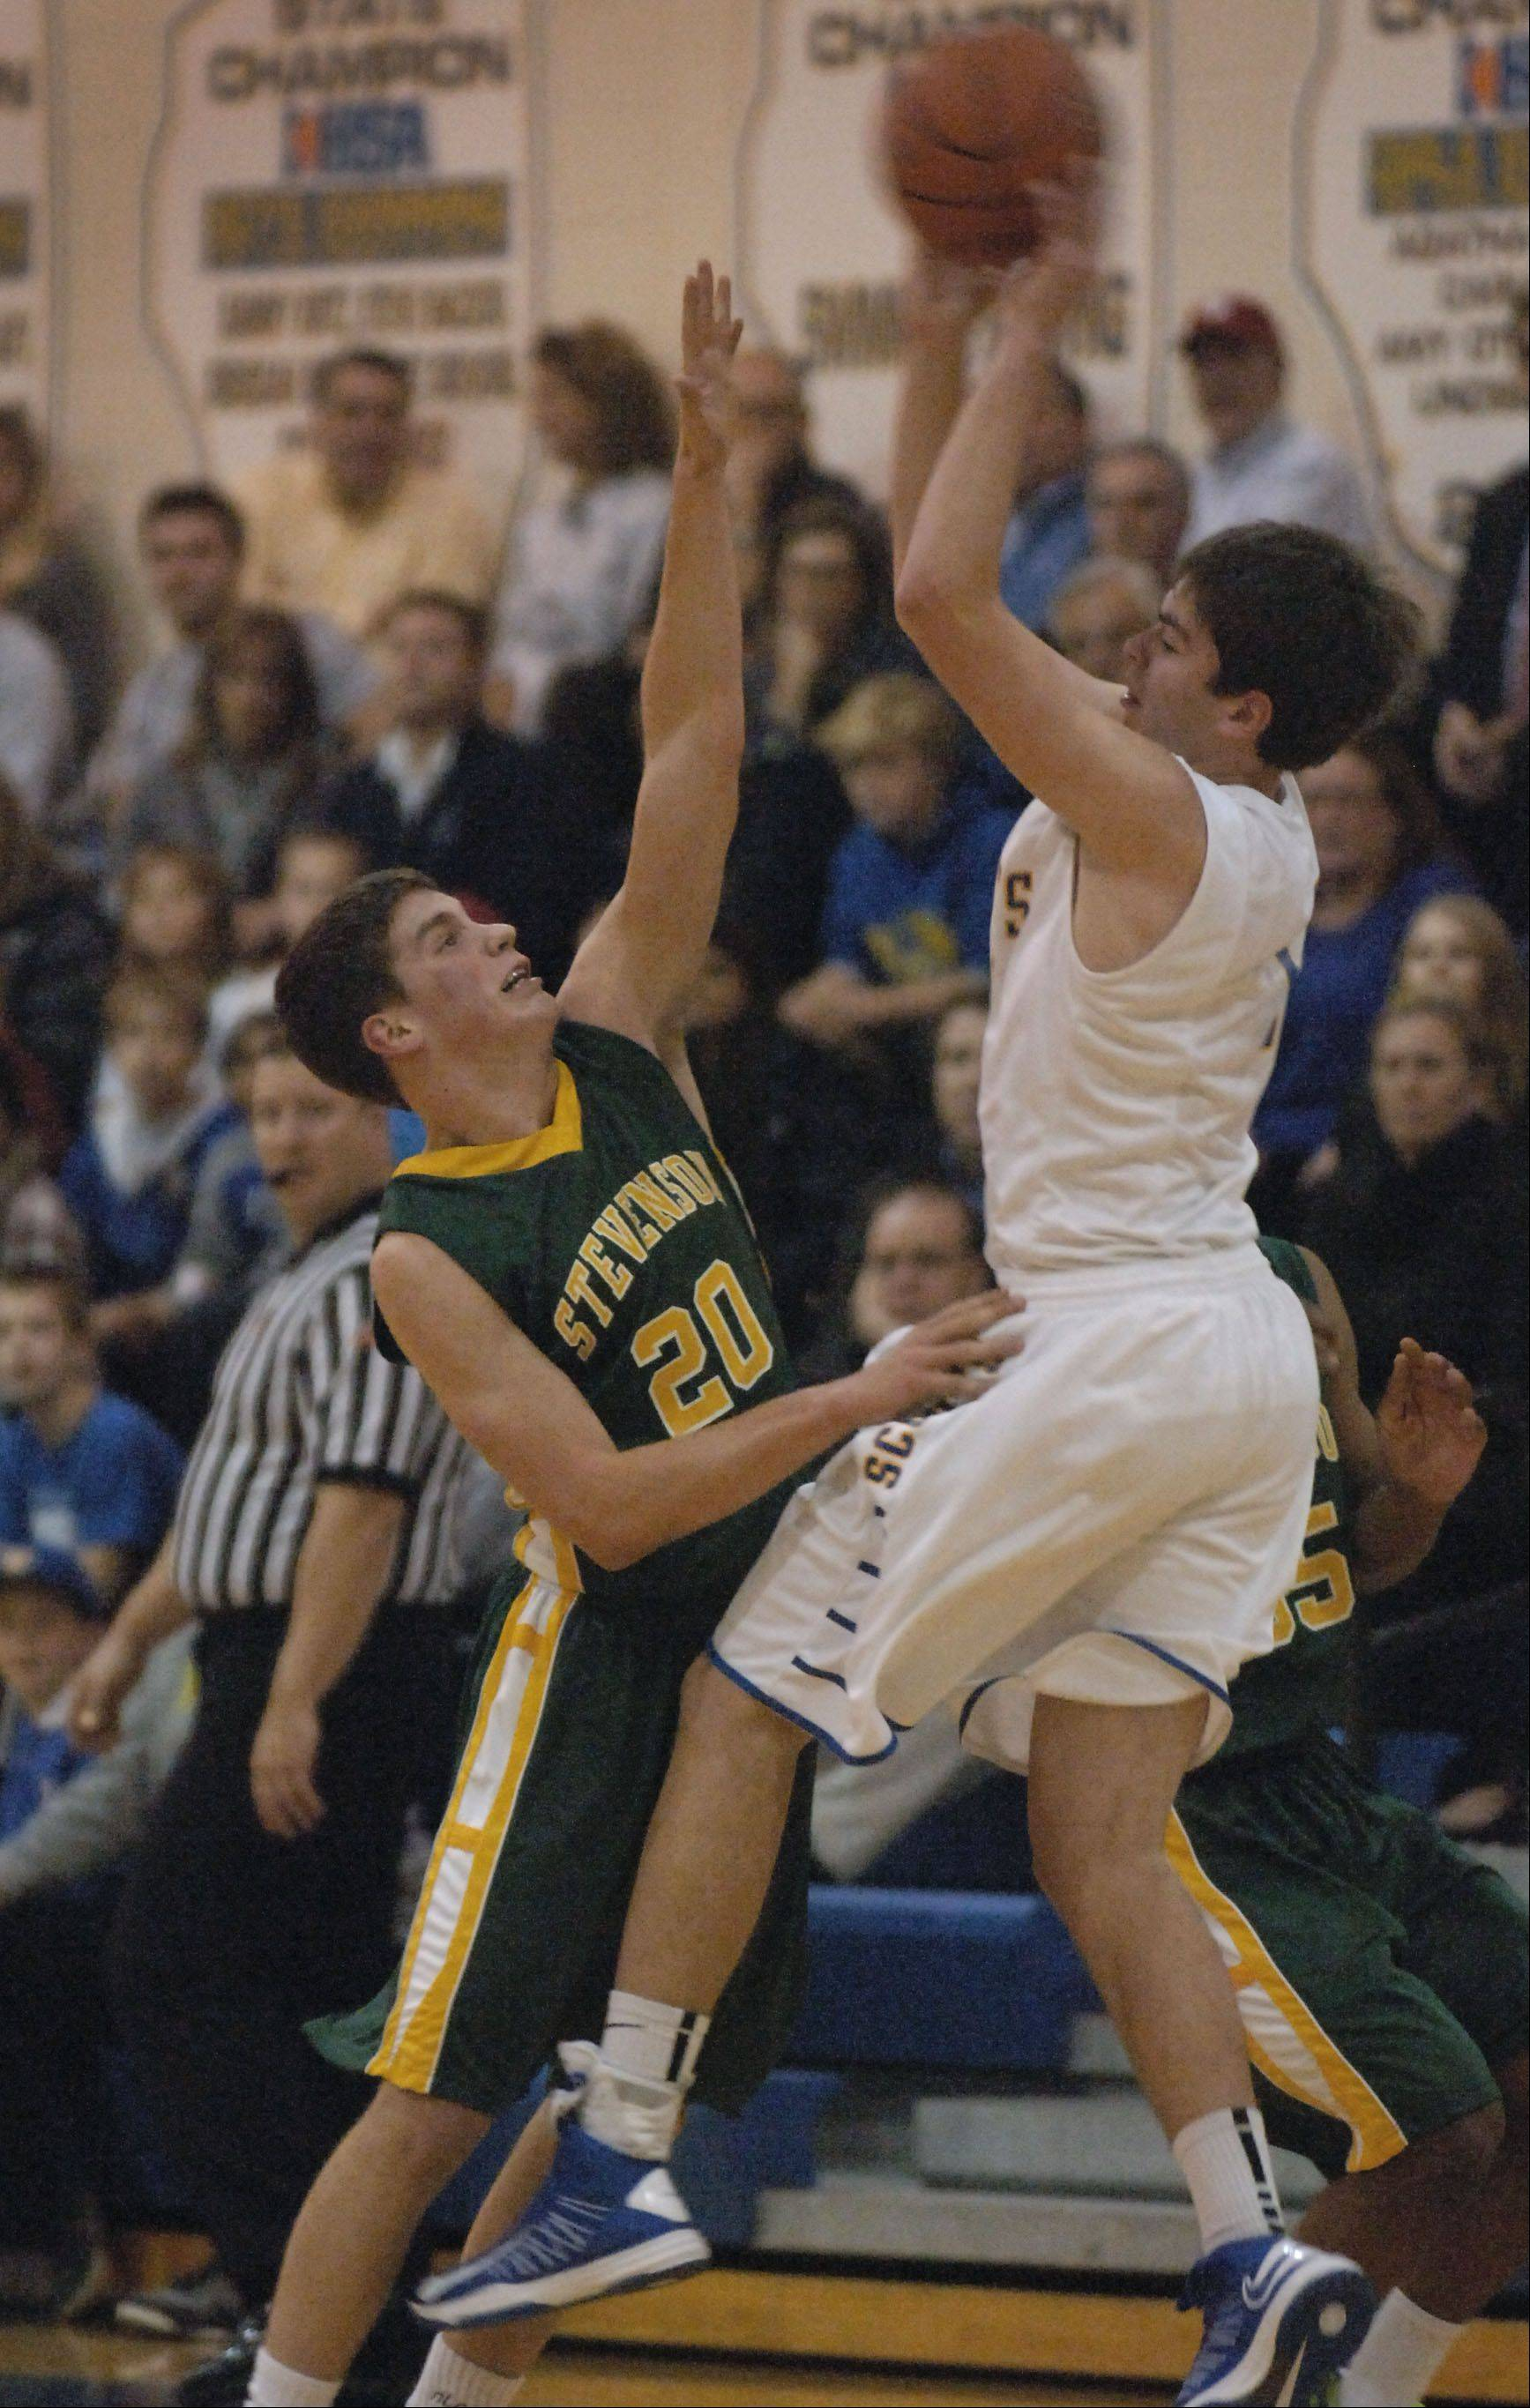 Paul Valade/pvalade@dailyherald.com Stevenson's Matthew Morrissey, 20, puts the pressure on Lake Forest's Ben Simpson Tuesday night in Lake Forest.